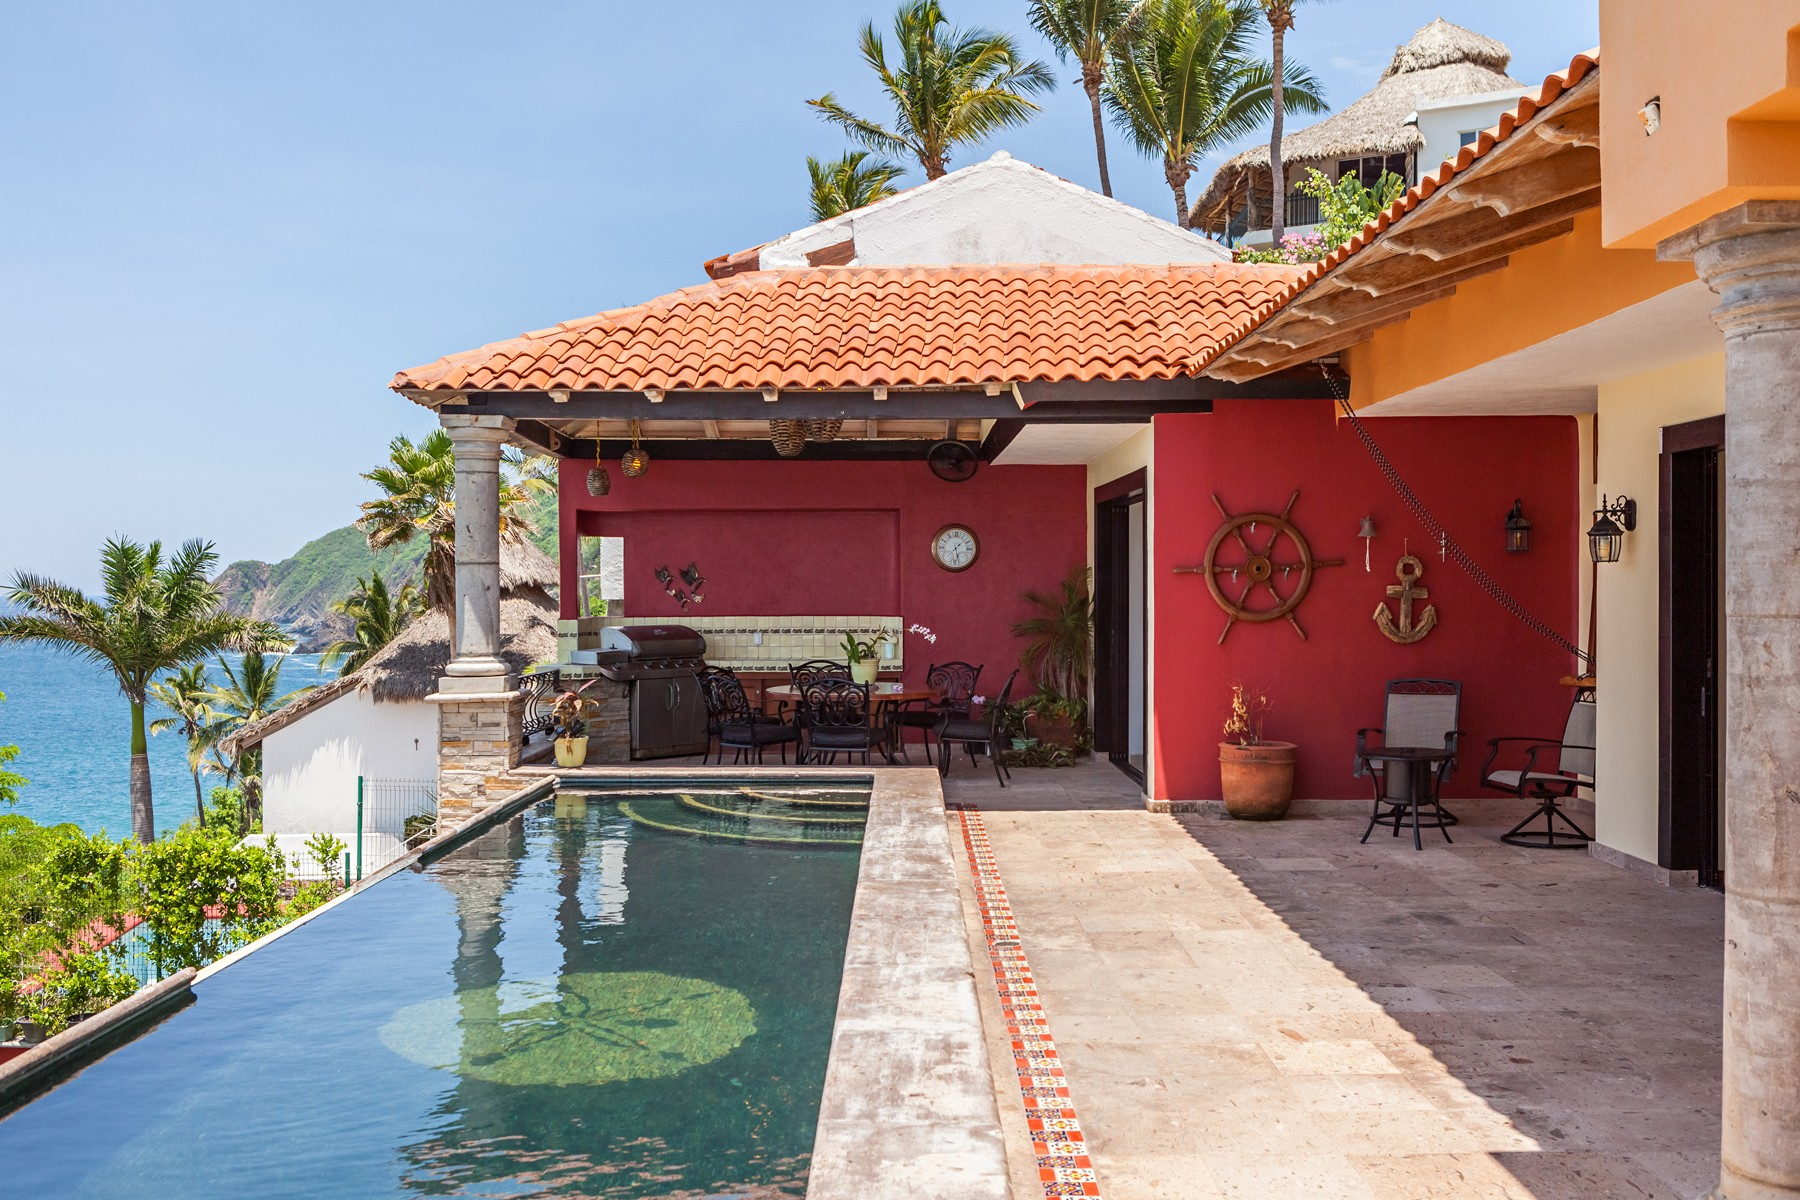 Single Family Home for Sale at Casa Tranquila, Manzanillo Calle Almendros 100 Manzanillo, Colima 28860 Mexico